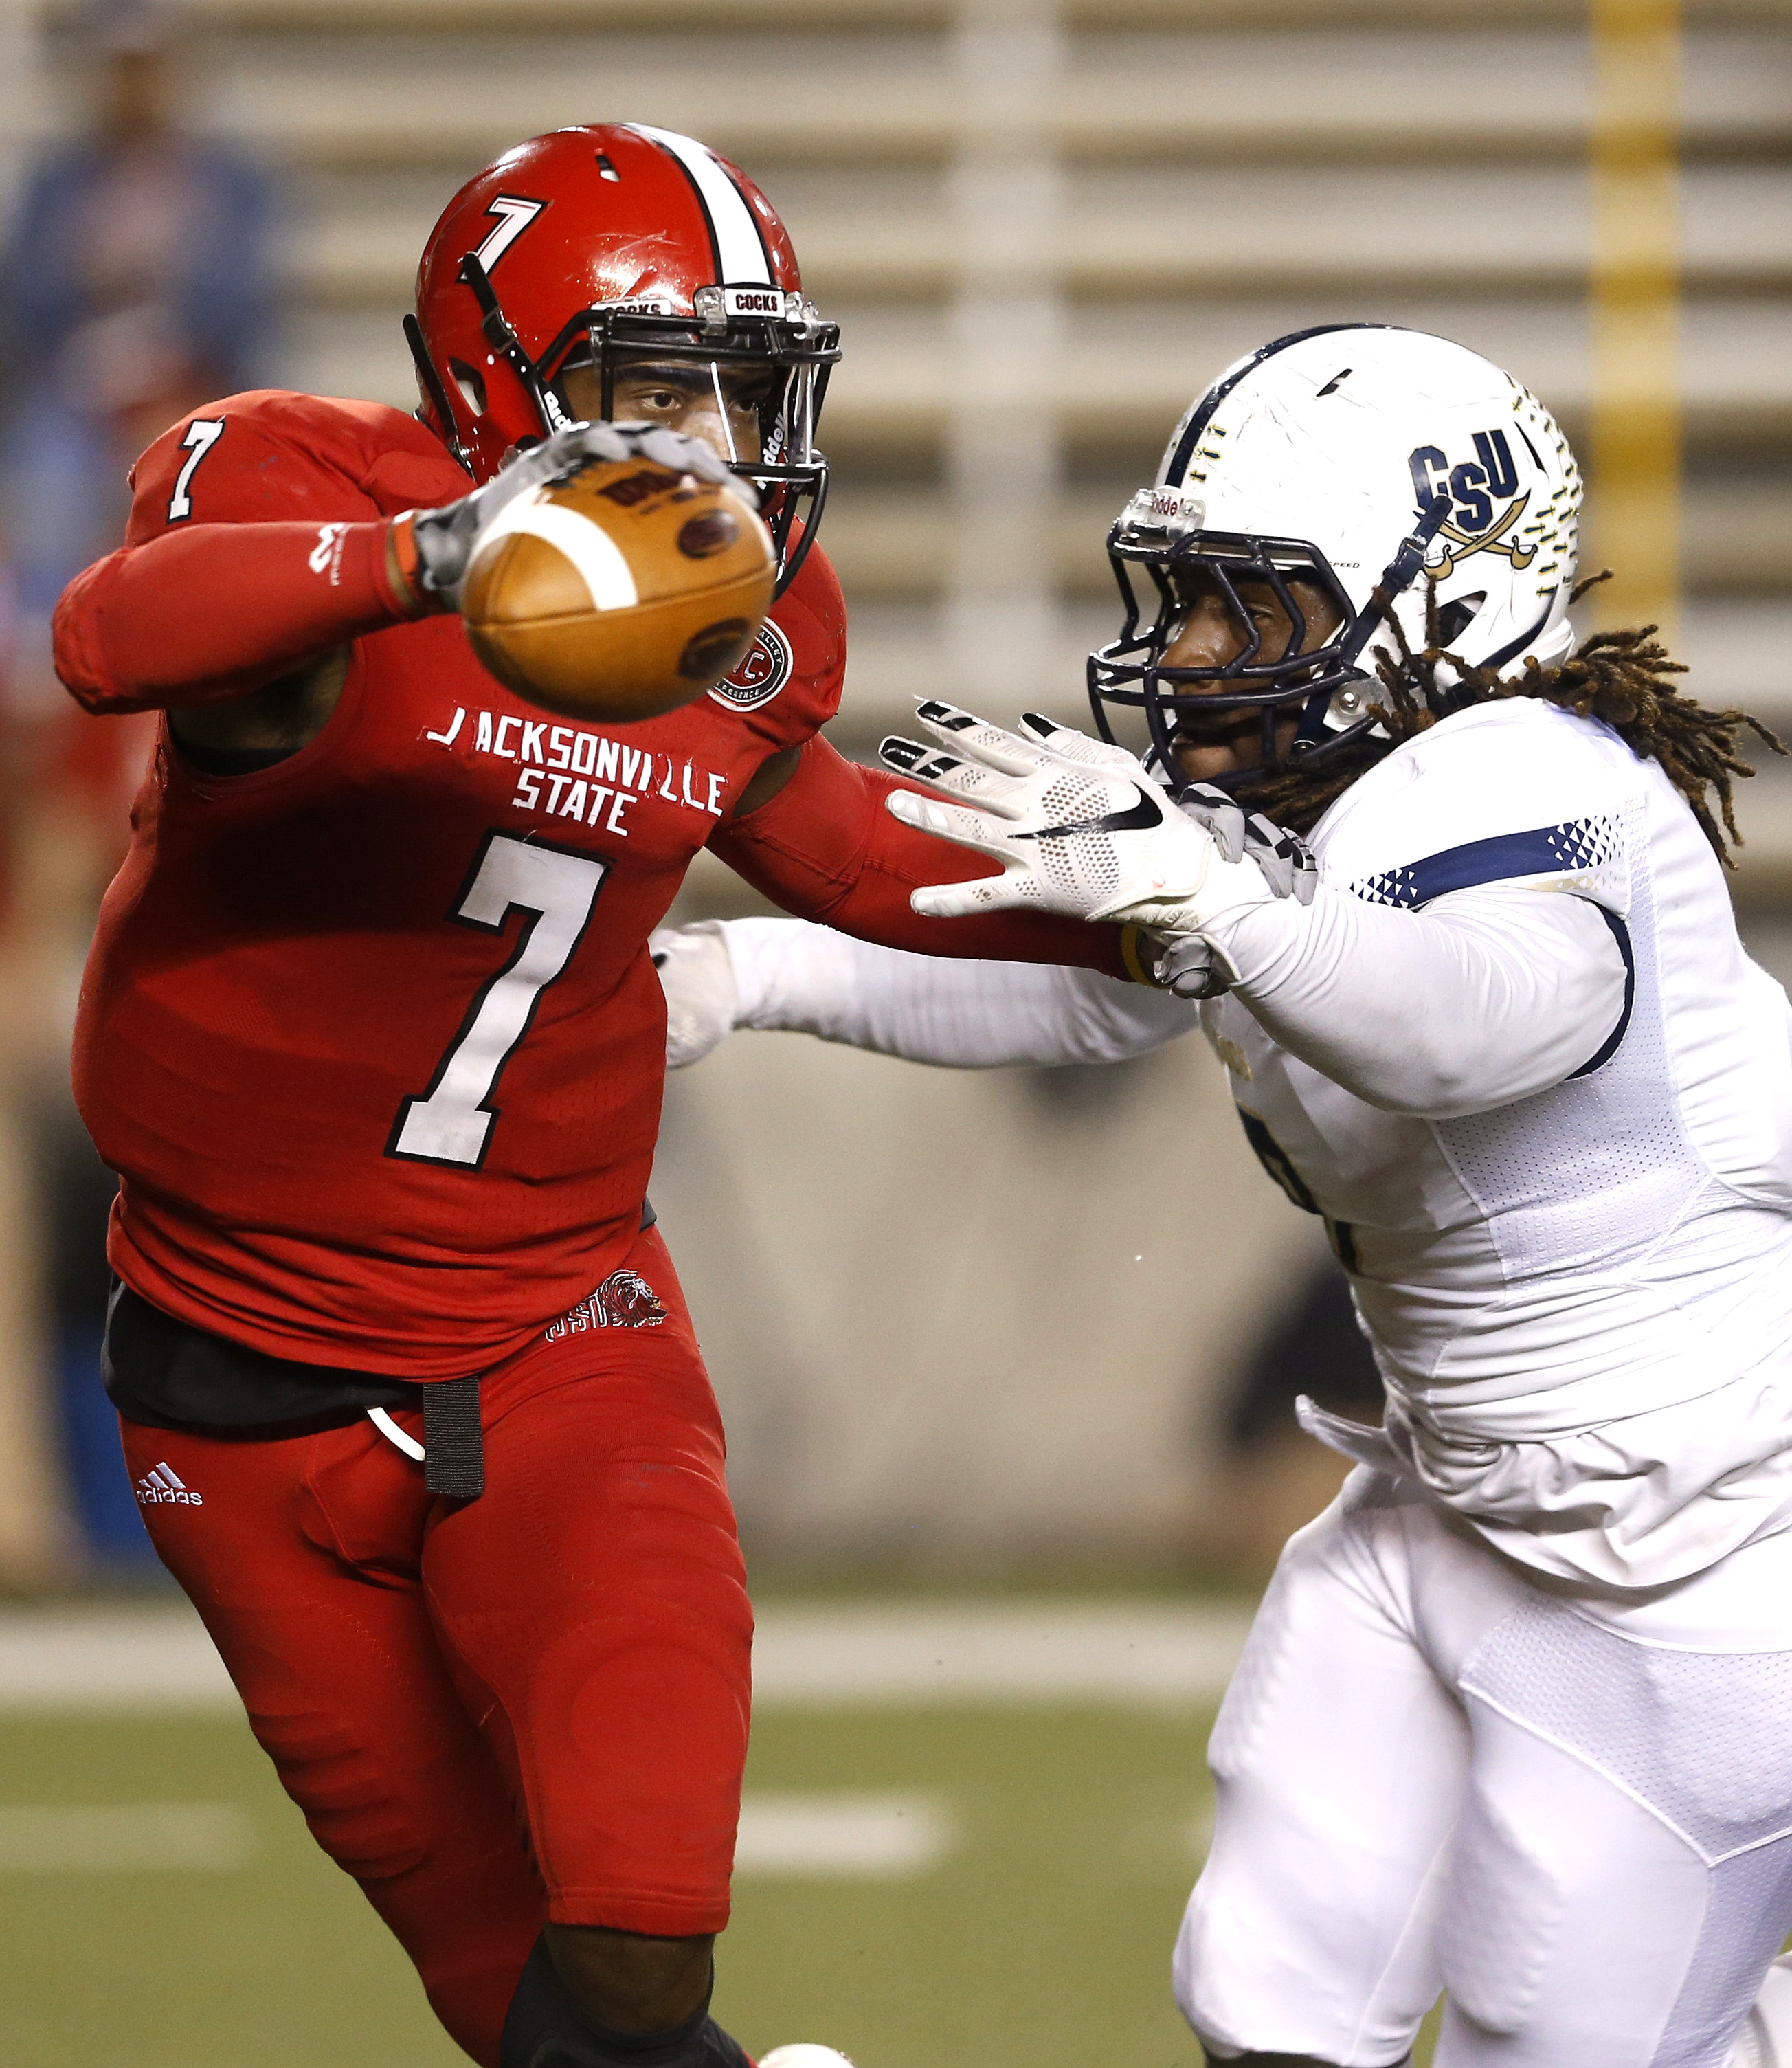 Jacksonville State quarterback Eli Jenkins (7) is pressured and sacked by Charleston Southern Anthony Ellis (8) during the first half of an NCAA college football game, Friday, Dec. 11, 2015, in Jacksonville, Ala. (AP Photo/ Butch Dill)